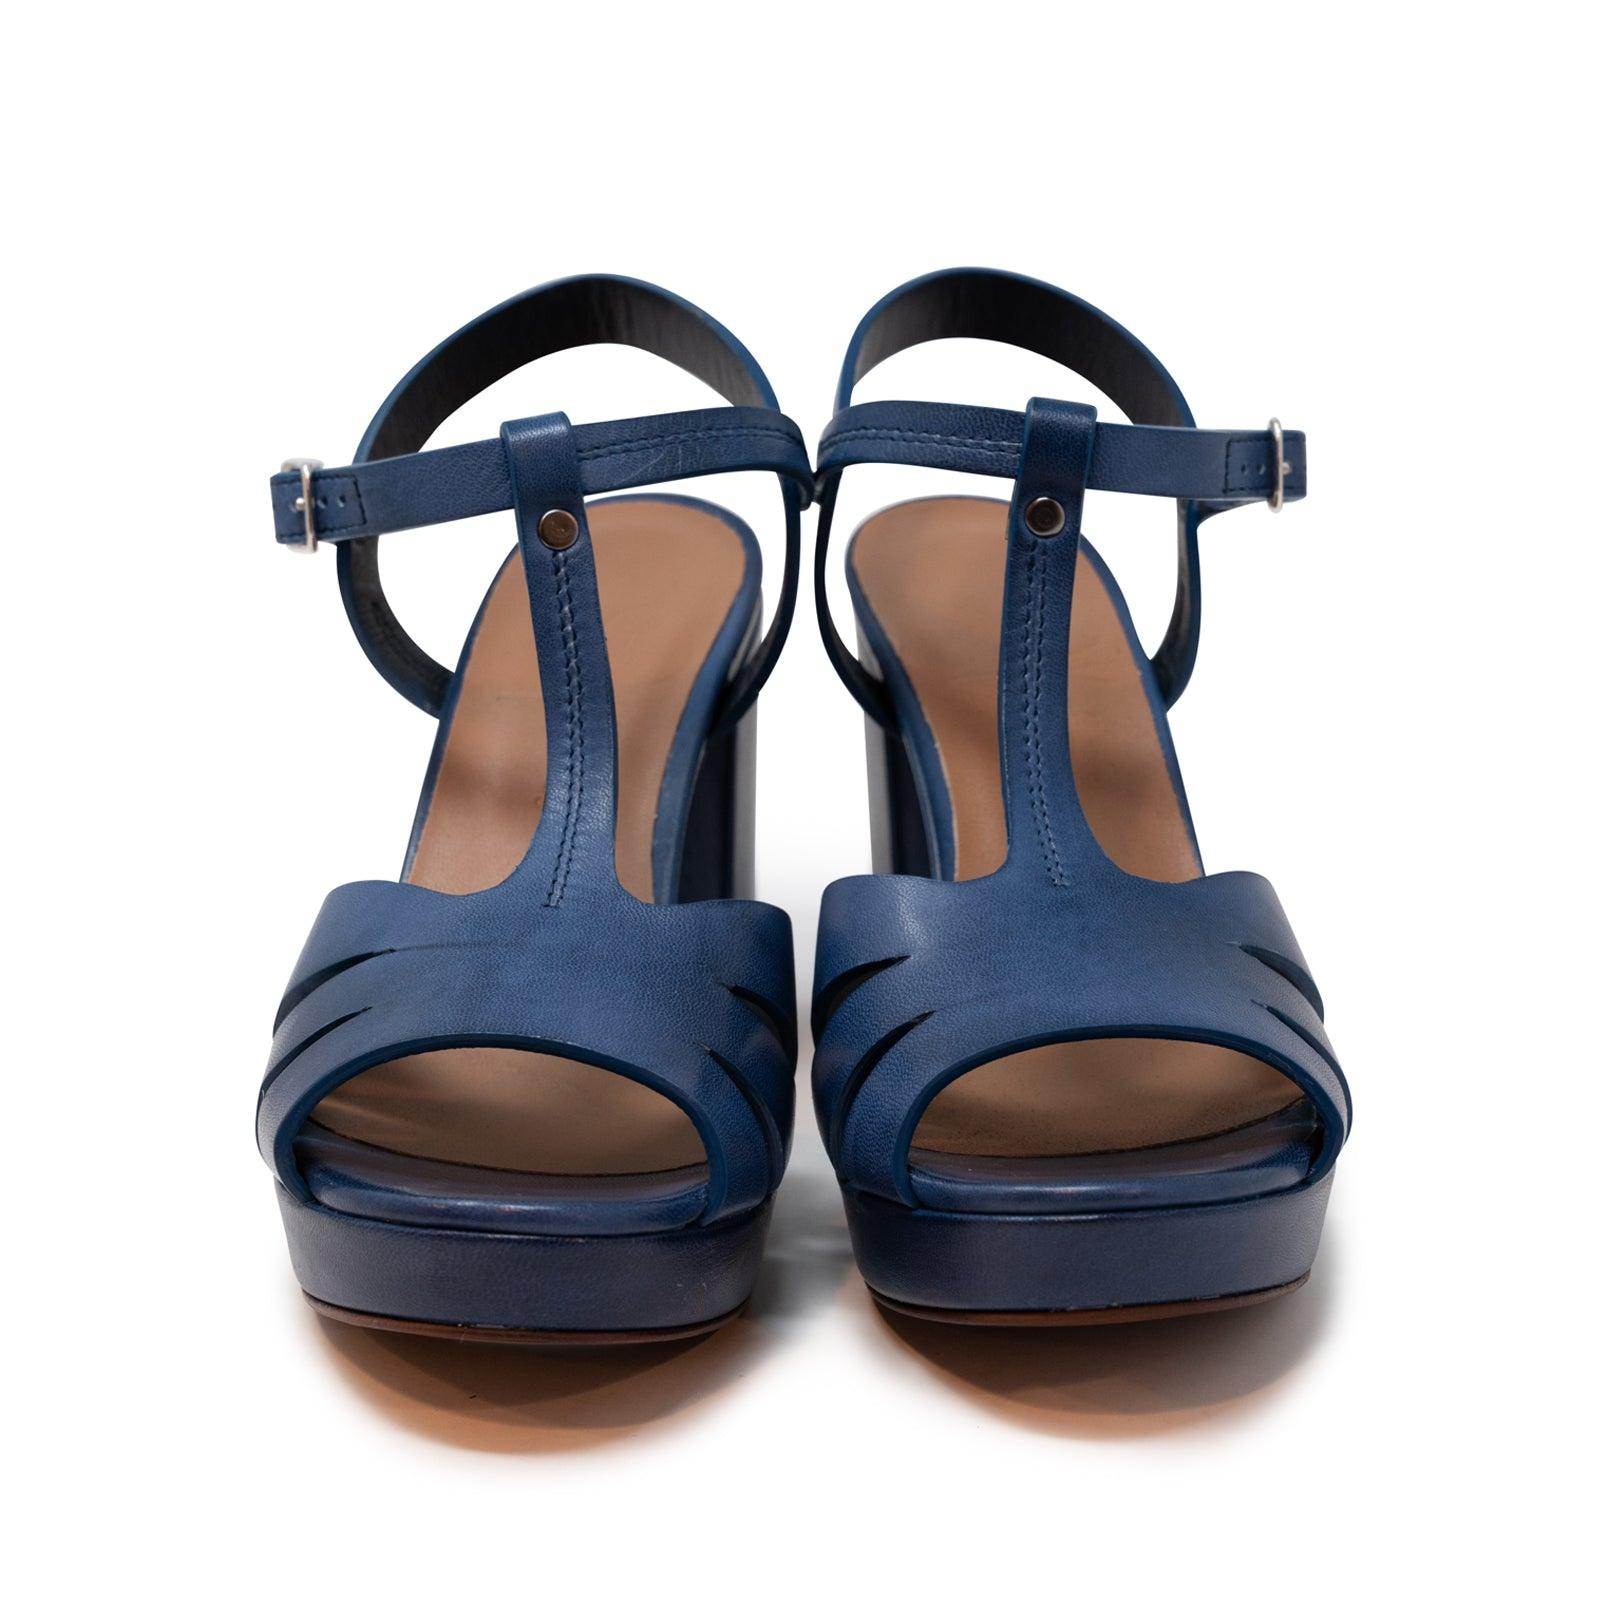 Women's Buffered Leather Platform Sandals in Oltremare